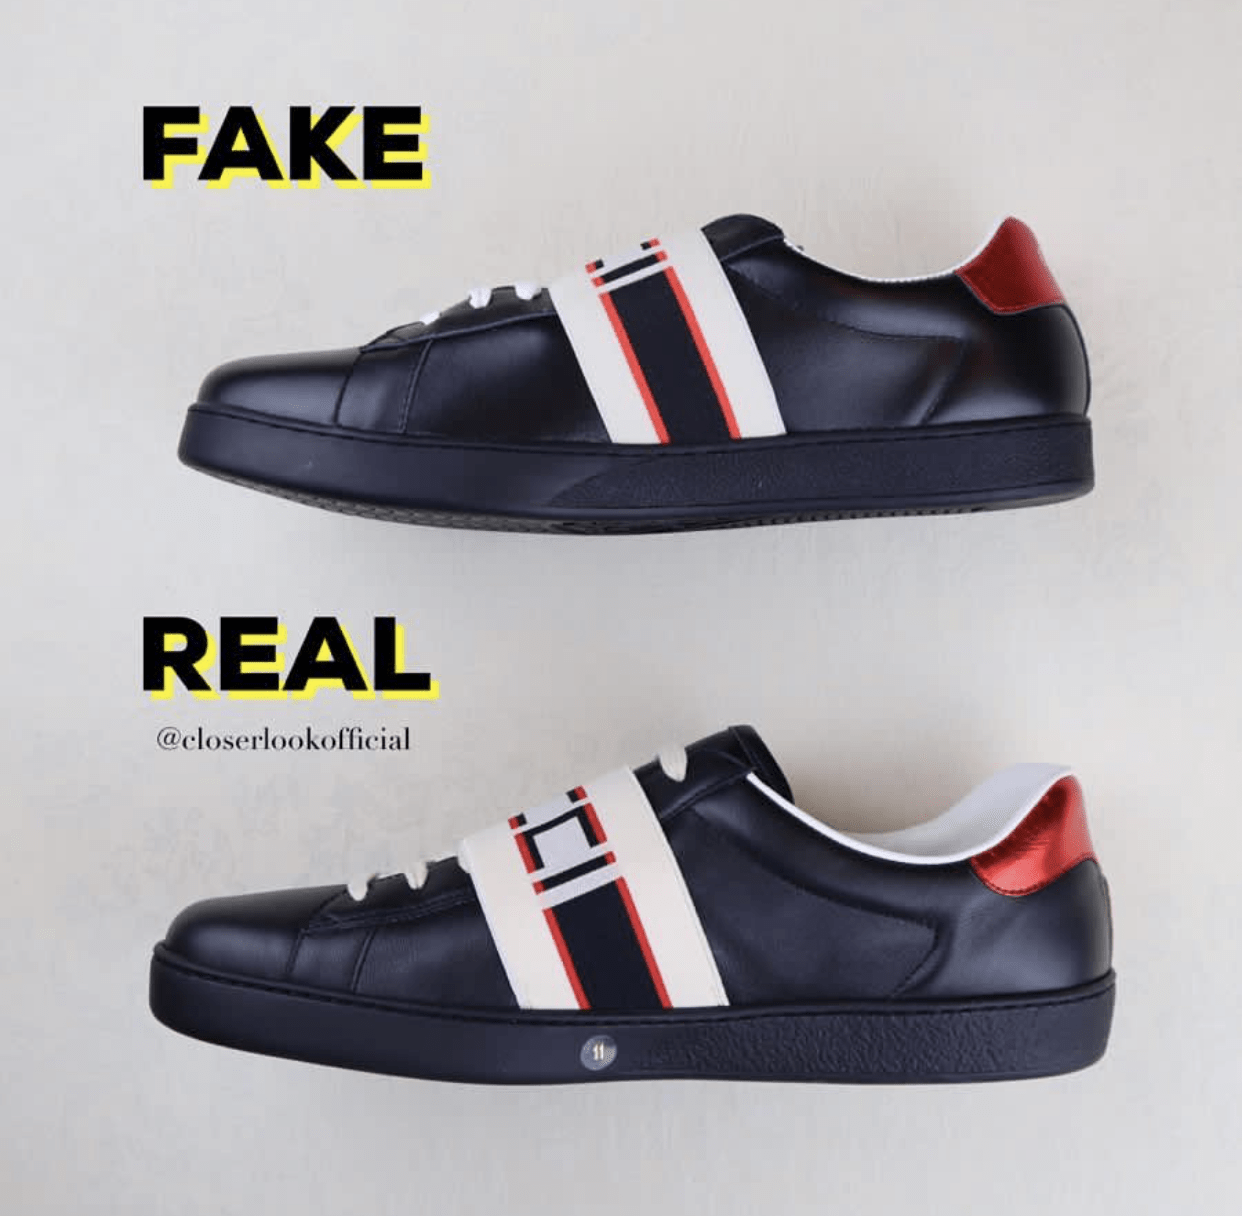 fb0a23abcb93 The shape from a side view of this sneakers reveals clearly their  differences. The fake pairs are shorter and as you can see the Gucci Logo  cannot be seen ...